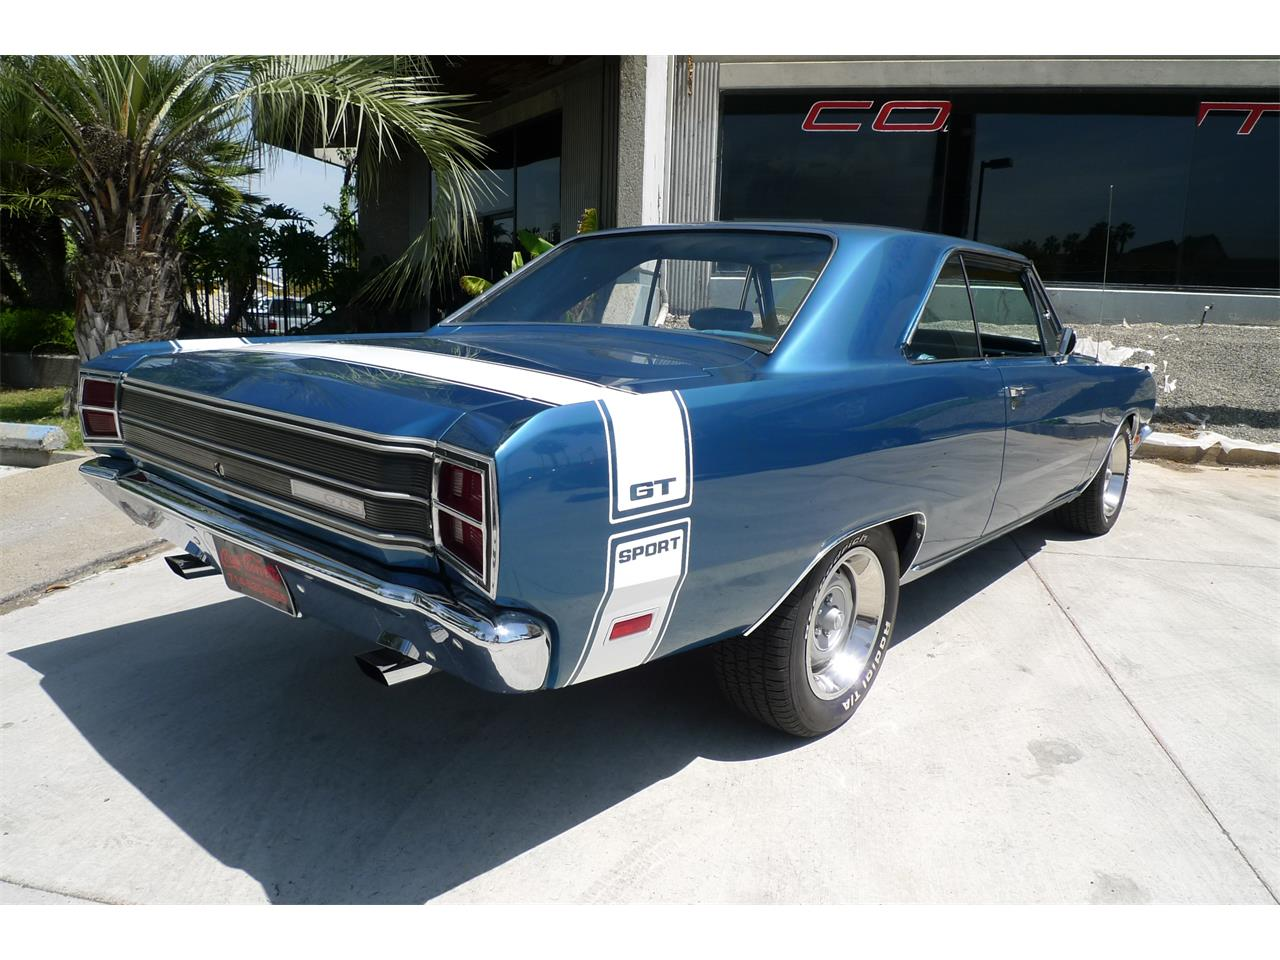 Large Picture of Classic '69 Dodge Dart GTS located in California - $35,975.00 Offered by Coast Corvette - PW66